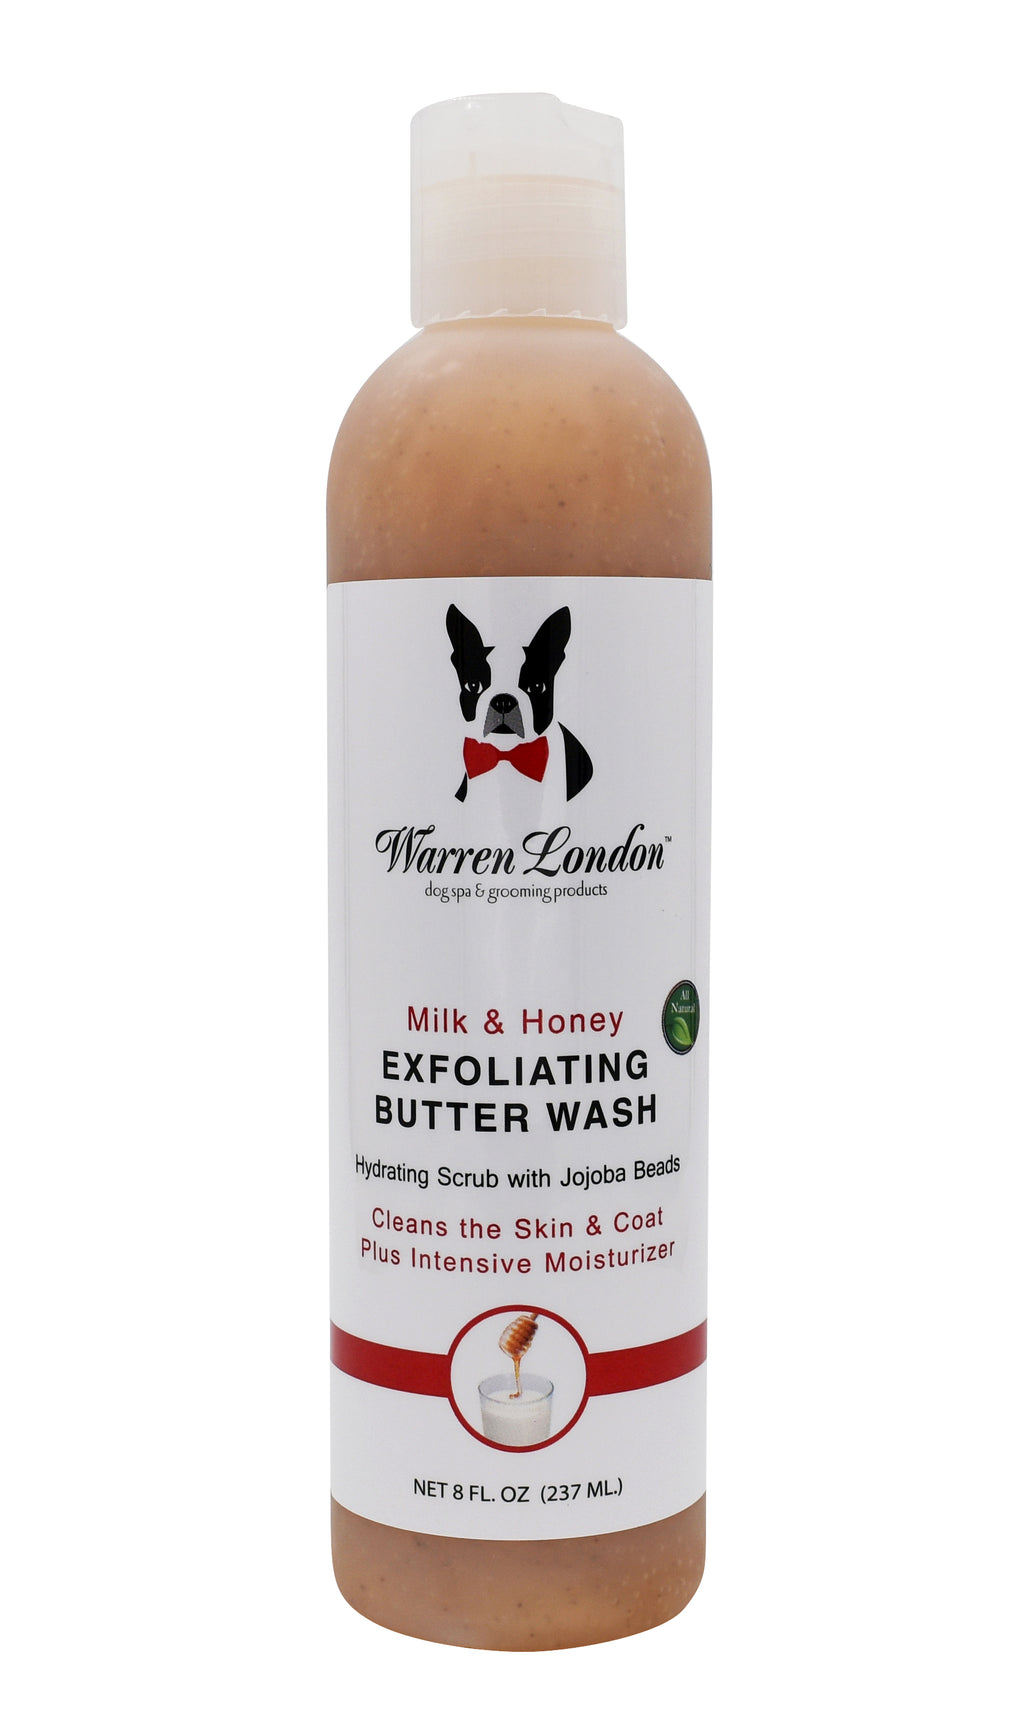 Warren London Exfoliating Butter Wash